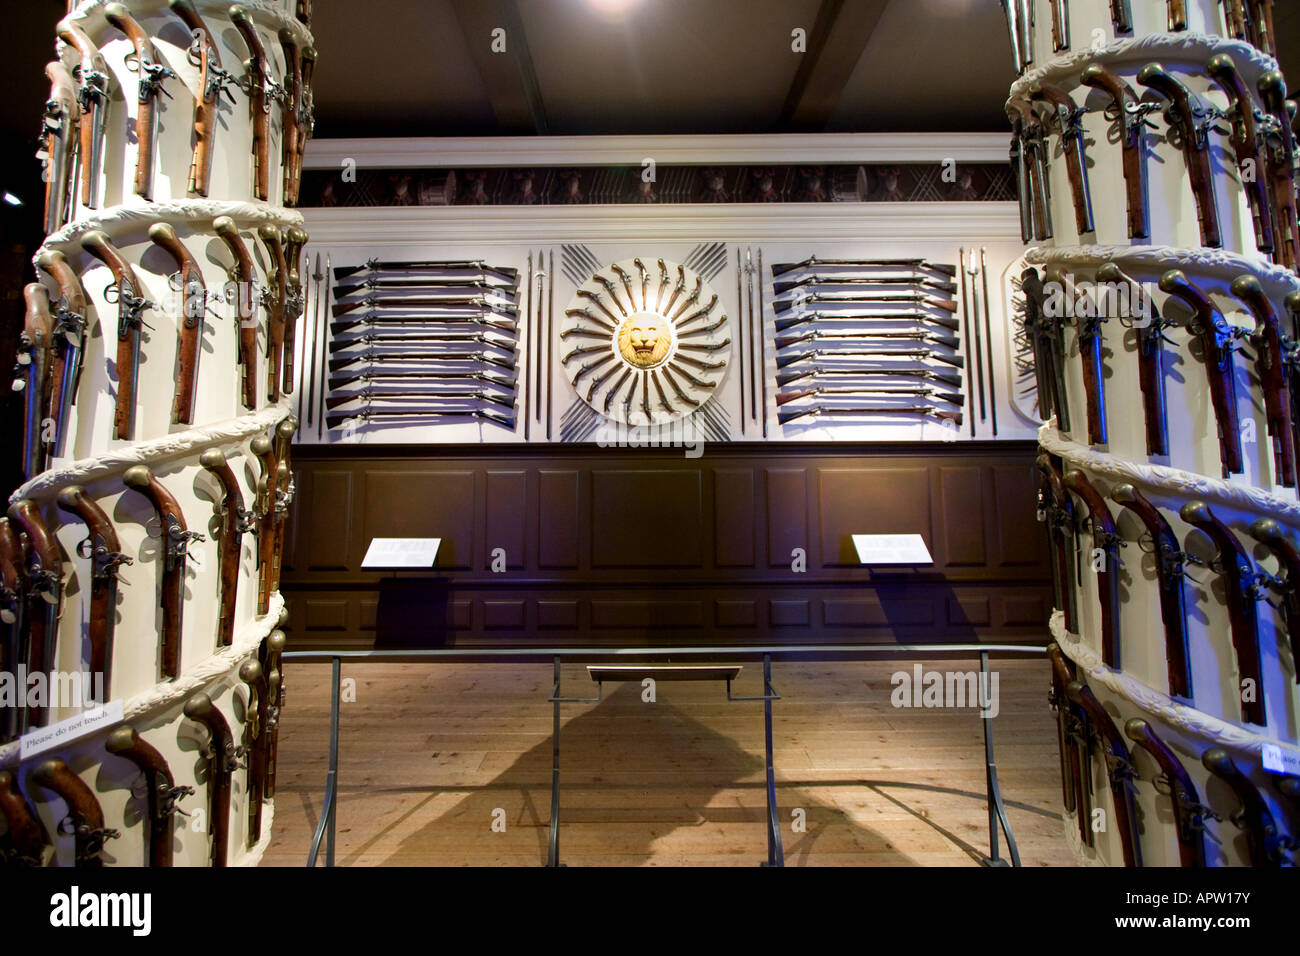 Pistols and rifles on display at the Royal Armories in the White Tower at the Tower of London in London UK Stock Photo